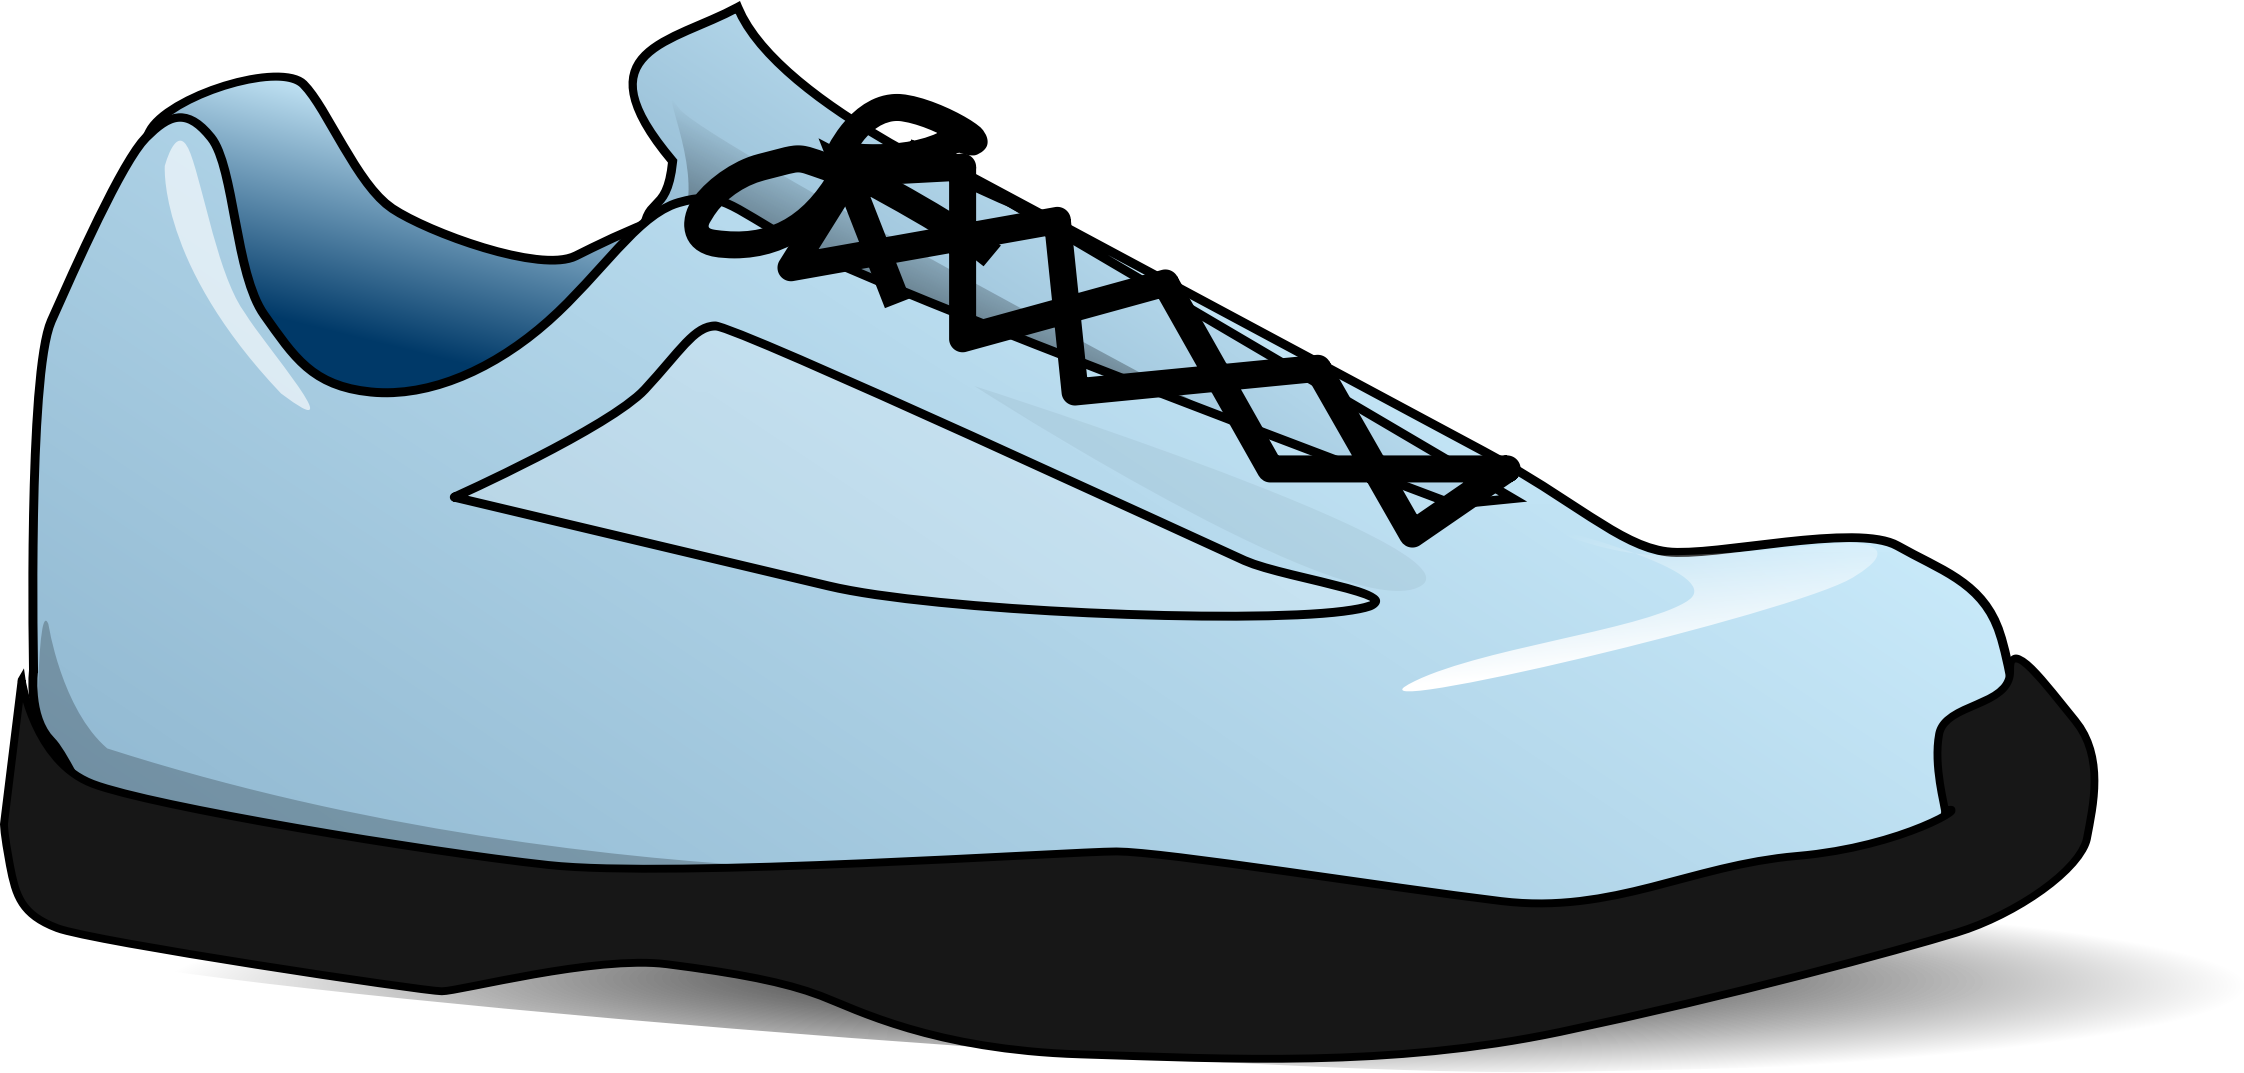 png free download Tennis shoes clipart.  collection of transparent